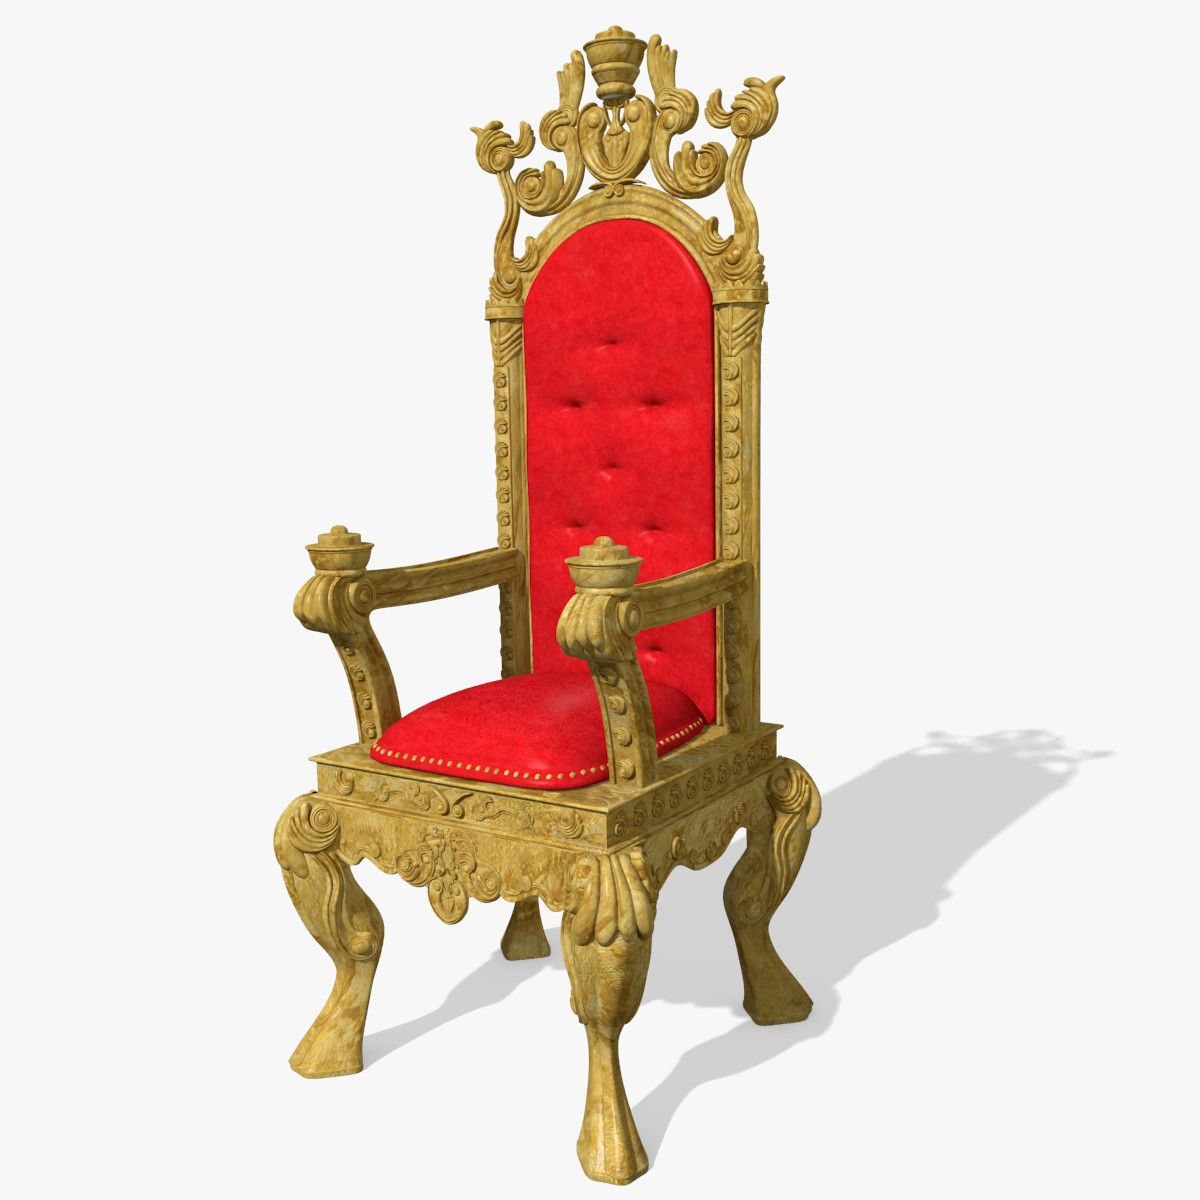 King chair with king - 3d King S Throne Chair